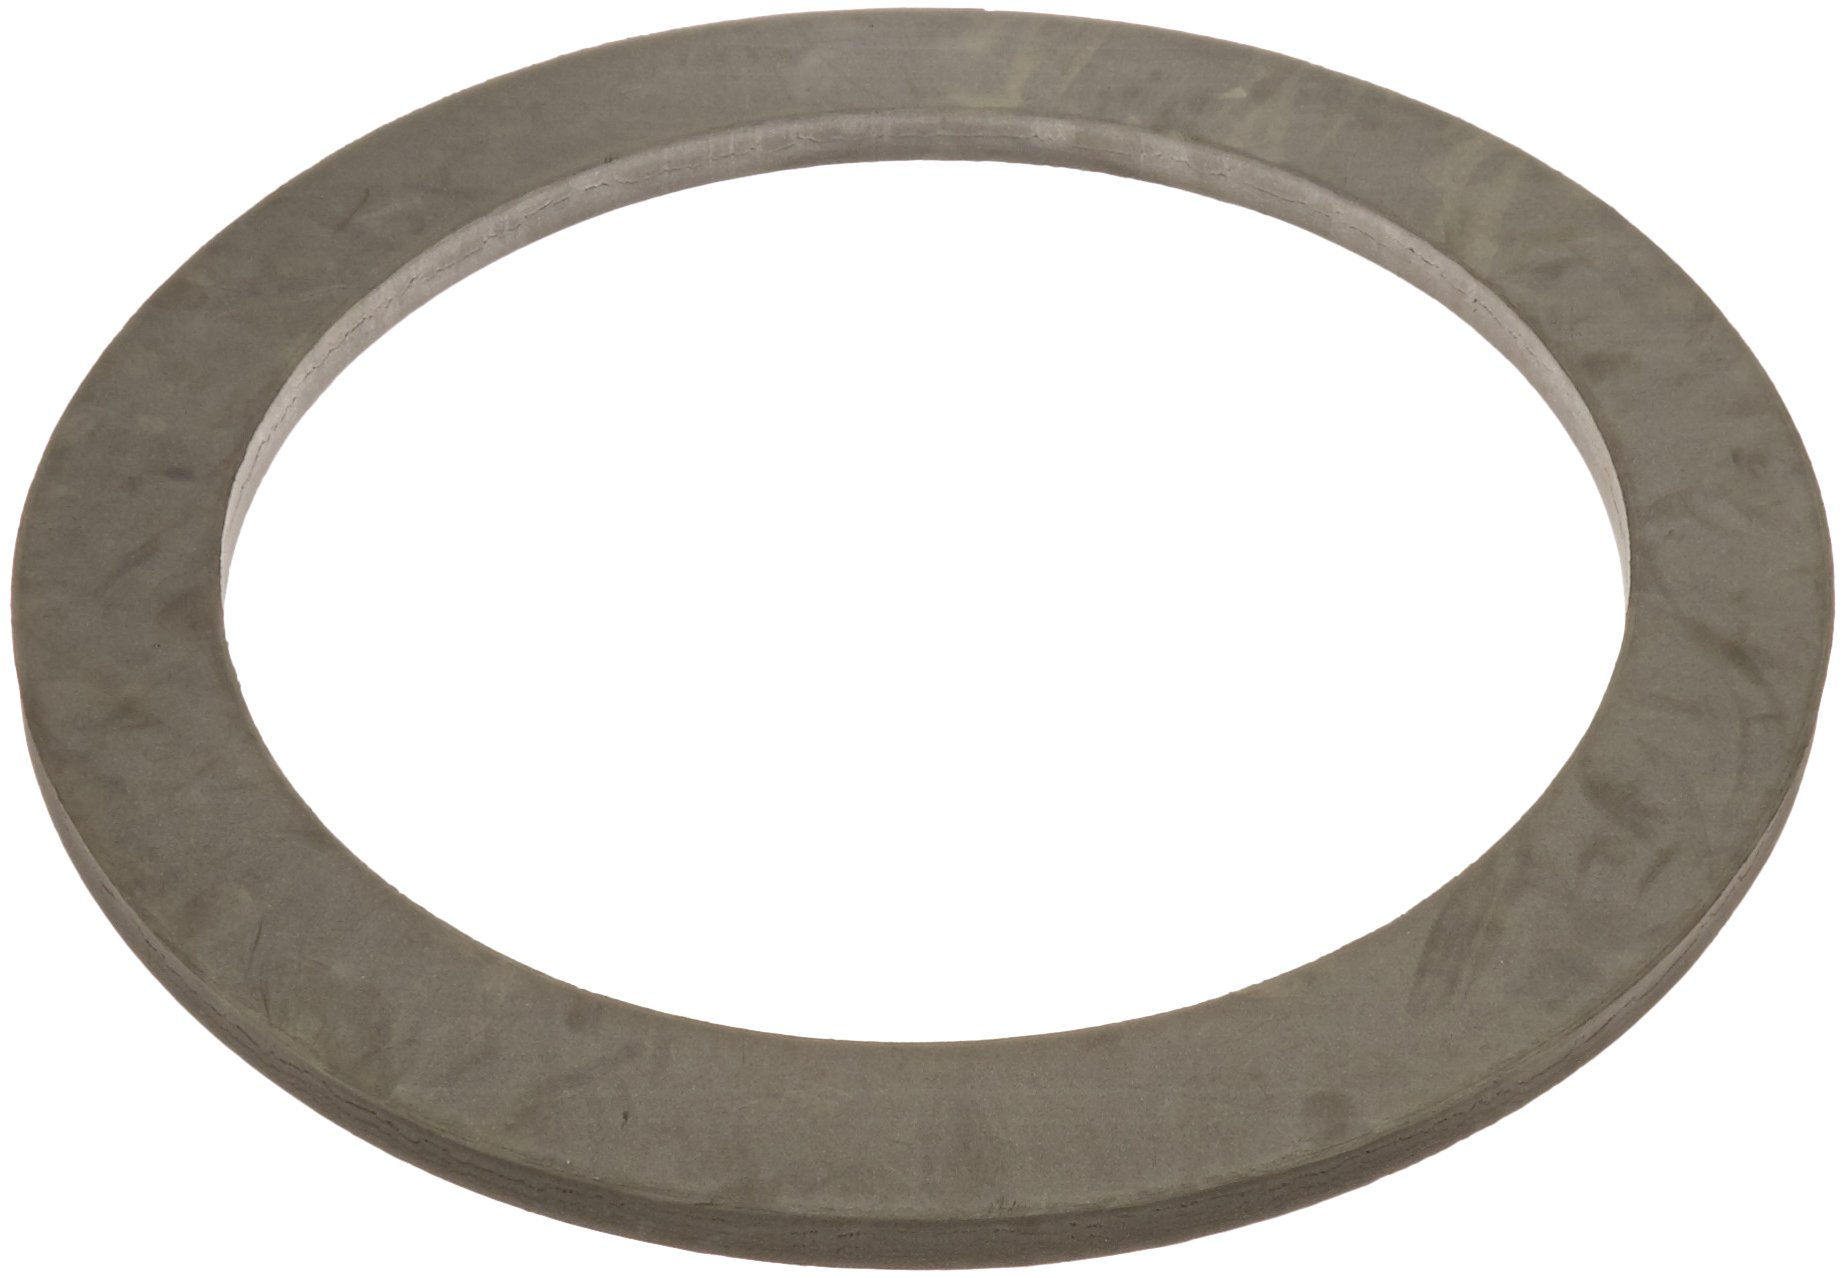 Justrite 11023 Drum Cover Gasket, For Safety Container